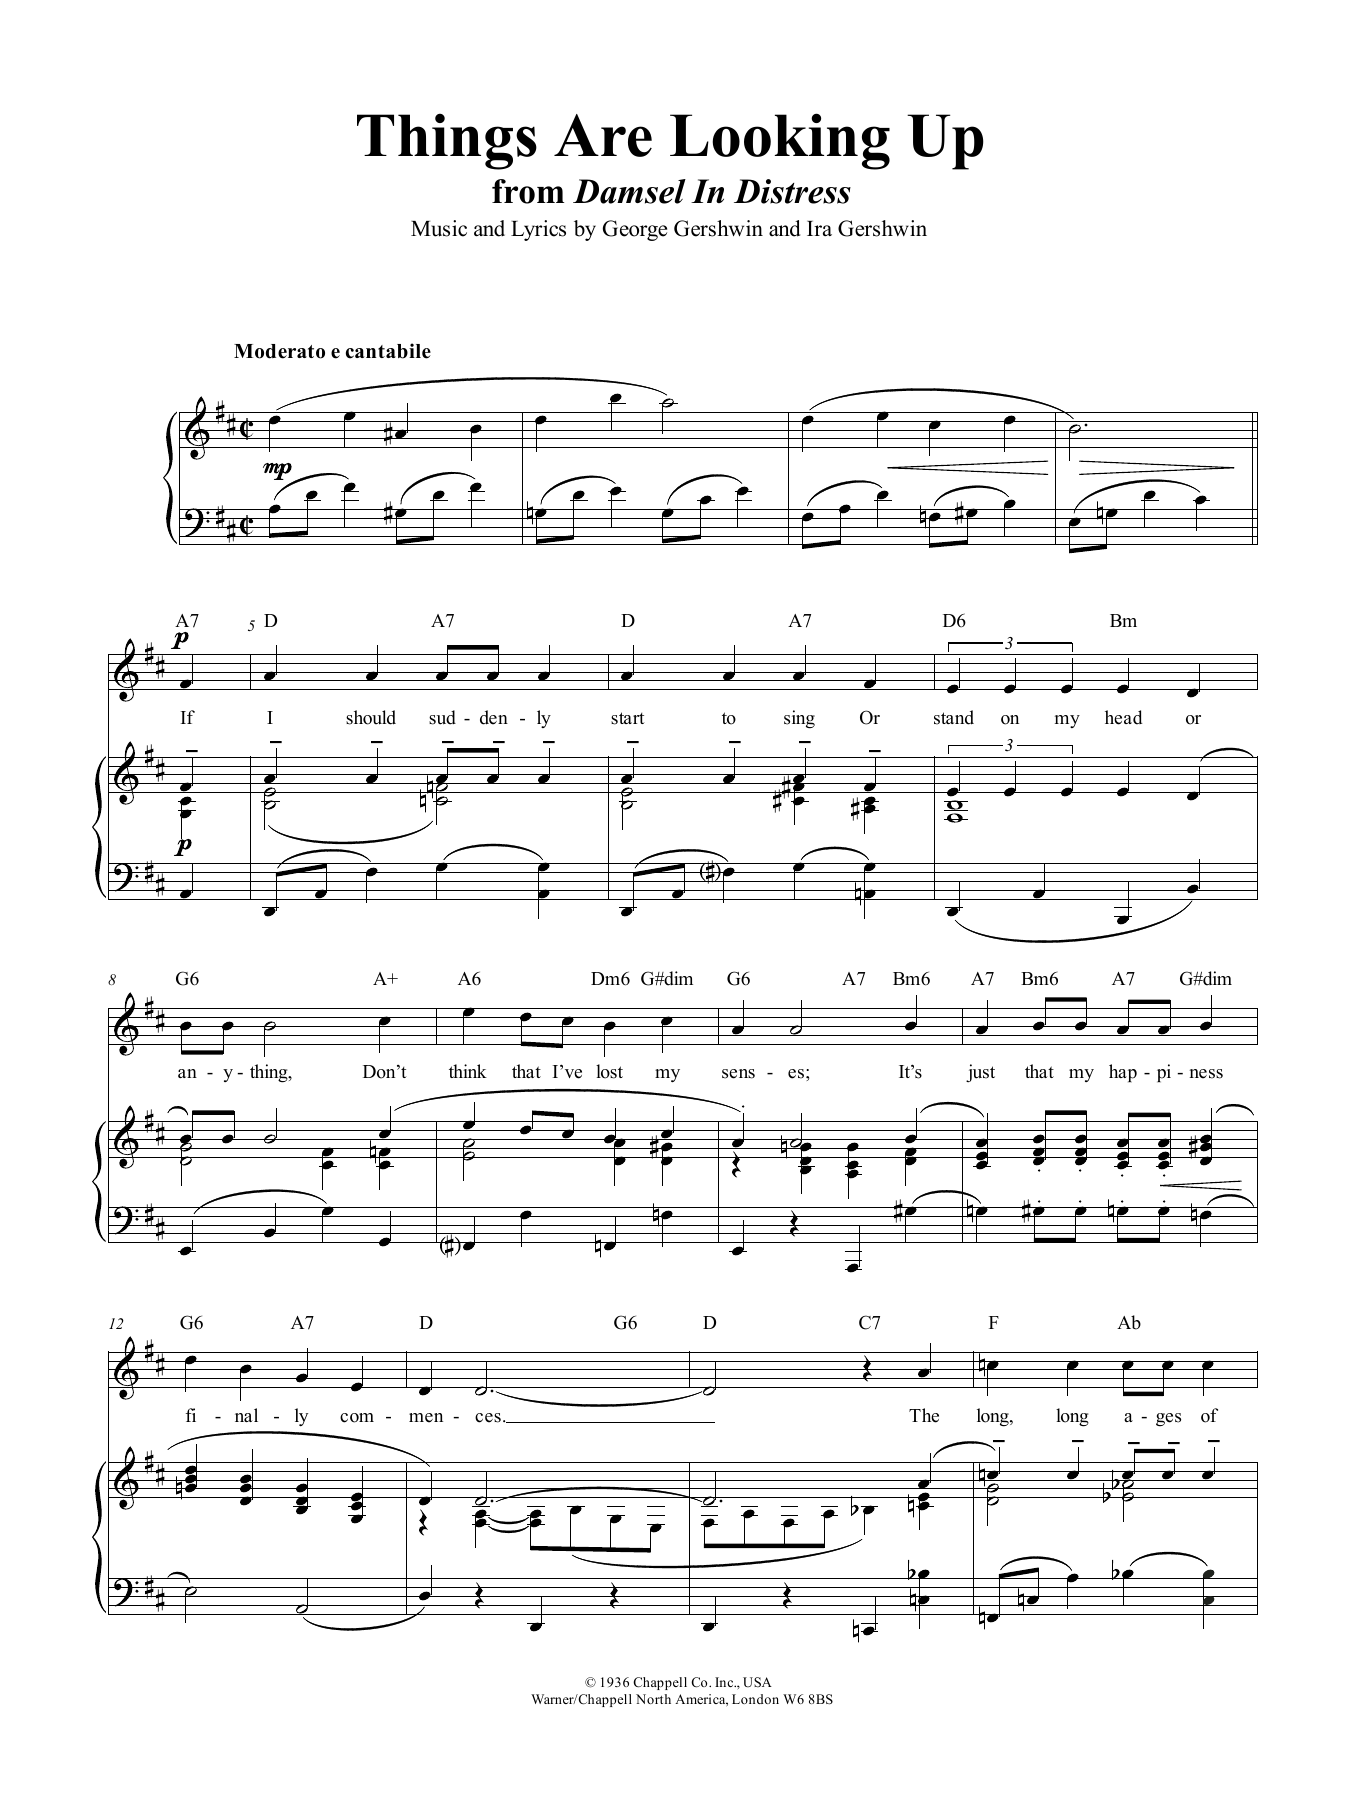 Things Are Looking Up by George Gershwin Piano, Vocal & Guitar (Right-Hand  Melody) Digital Sheet Music